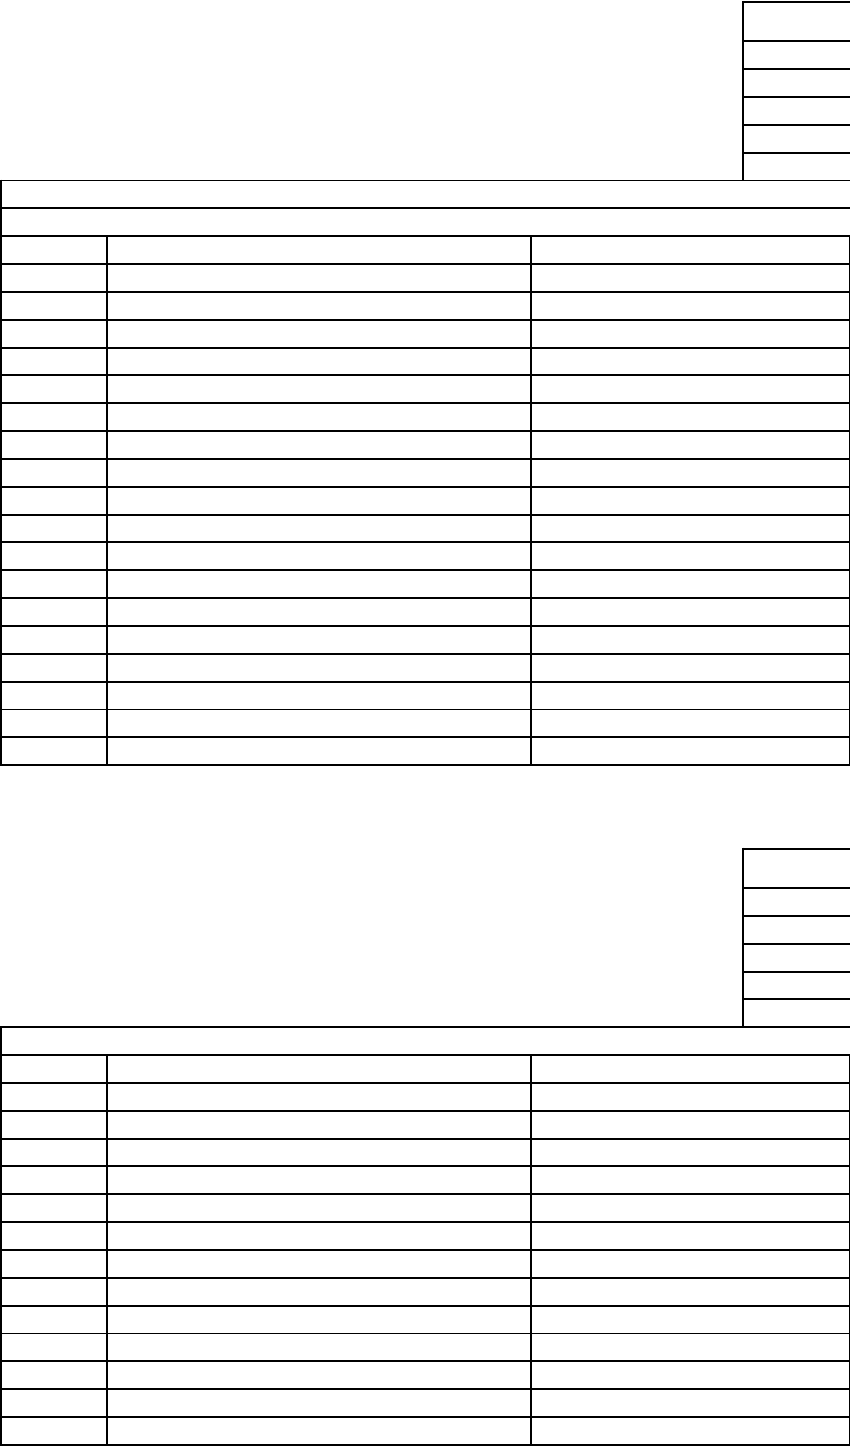 editable Spreadsheet table bootstrap